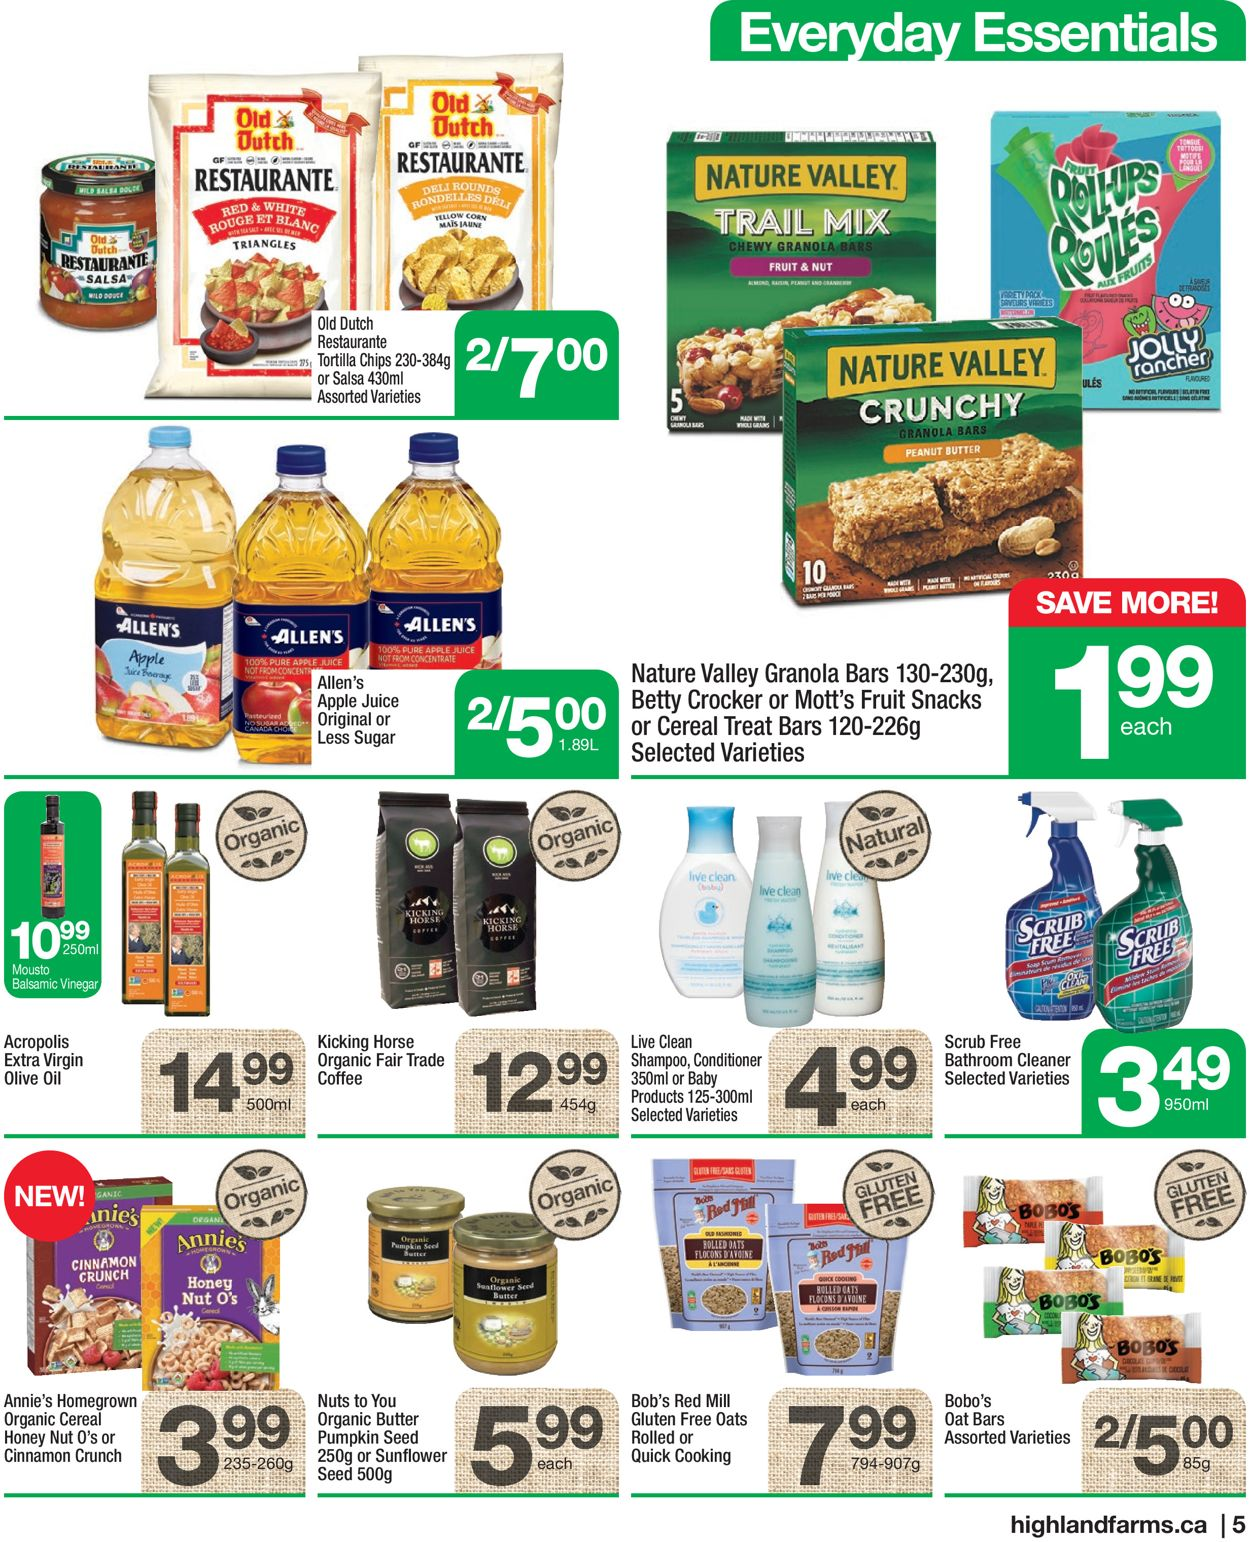 Highland Farms Flyer - 05/27-06/02/2021 (Page 5)